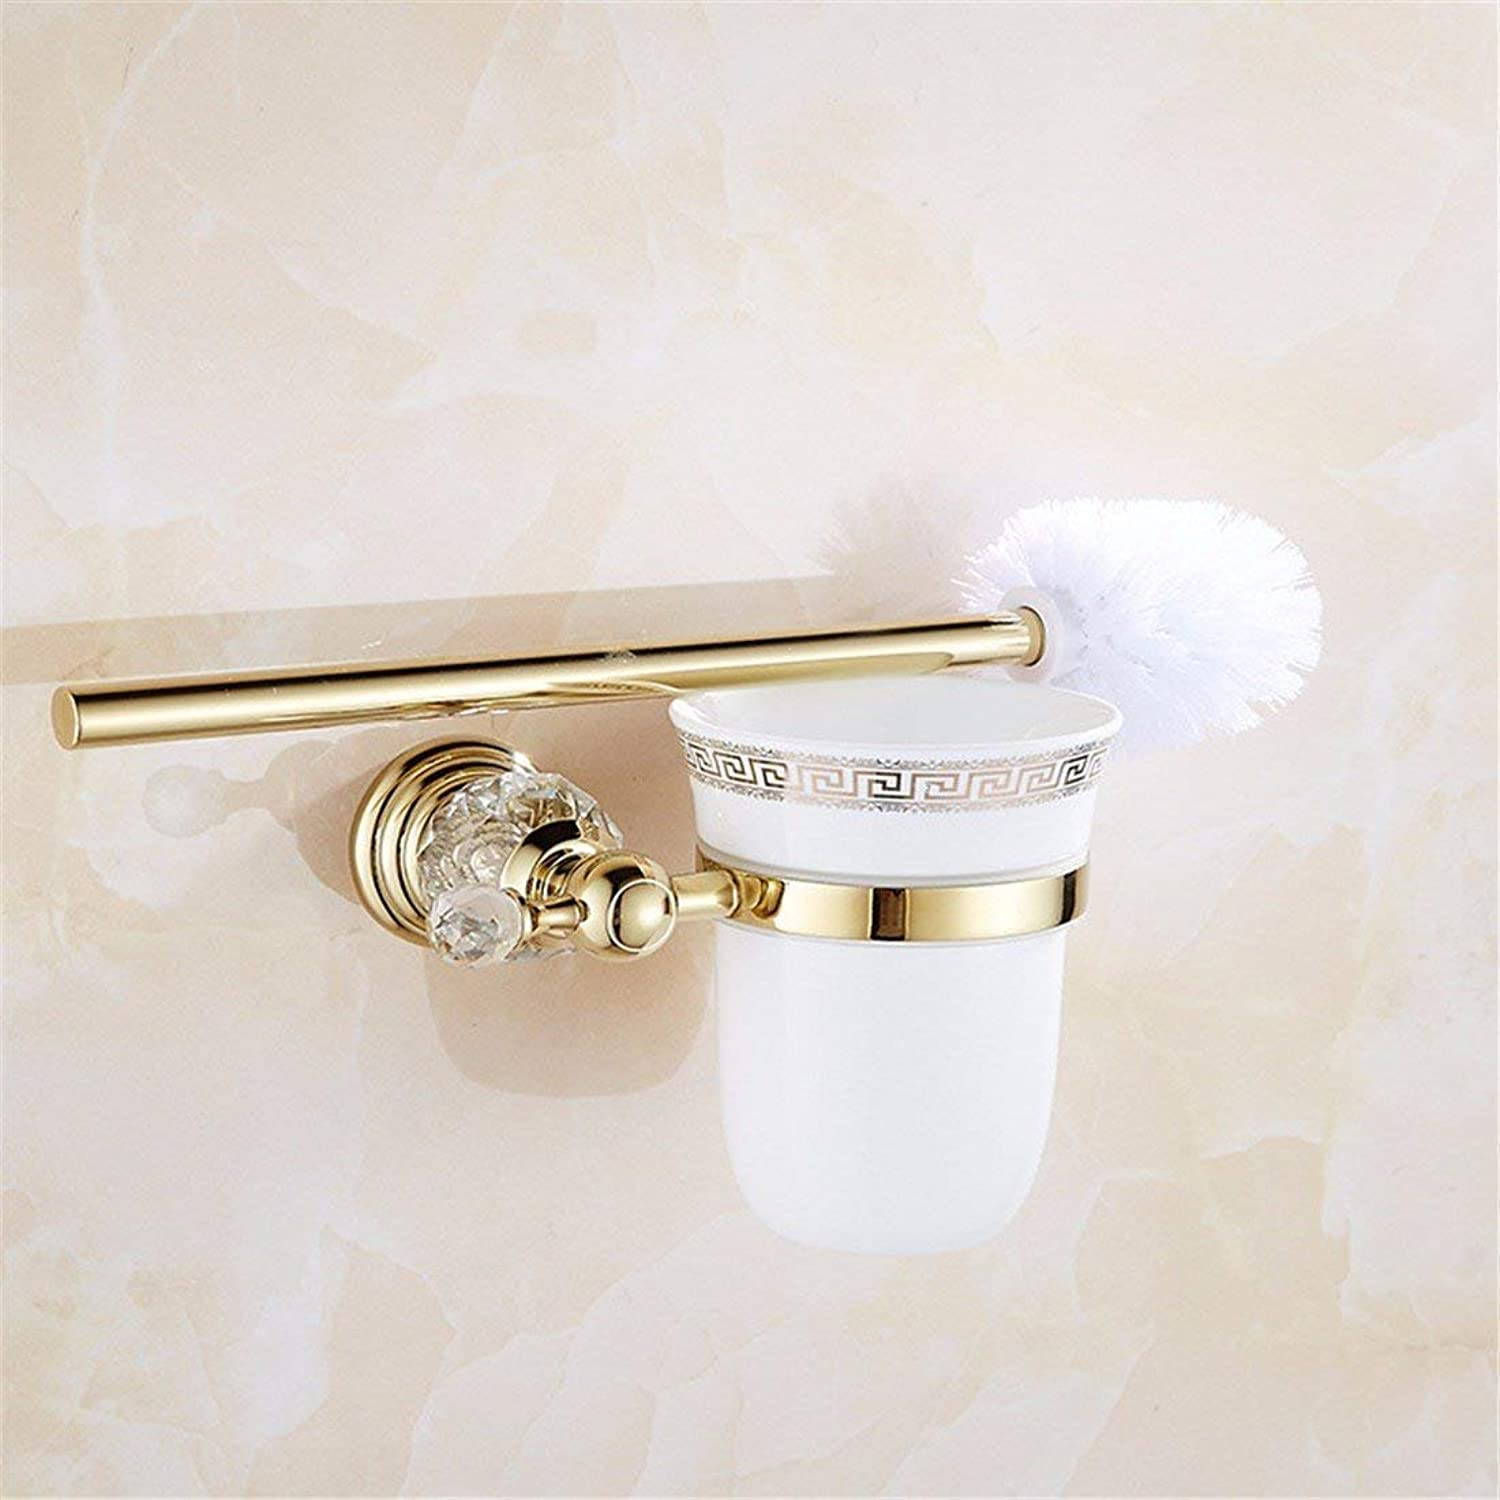 Christmas in Stainless Steel of European Style, Base in Crystal of gold, All Baths Pendentif, Single and Double Door Bar Toothbrush, WC Brush